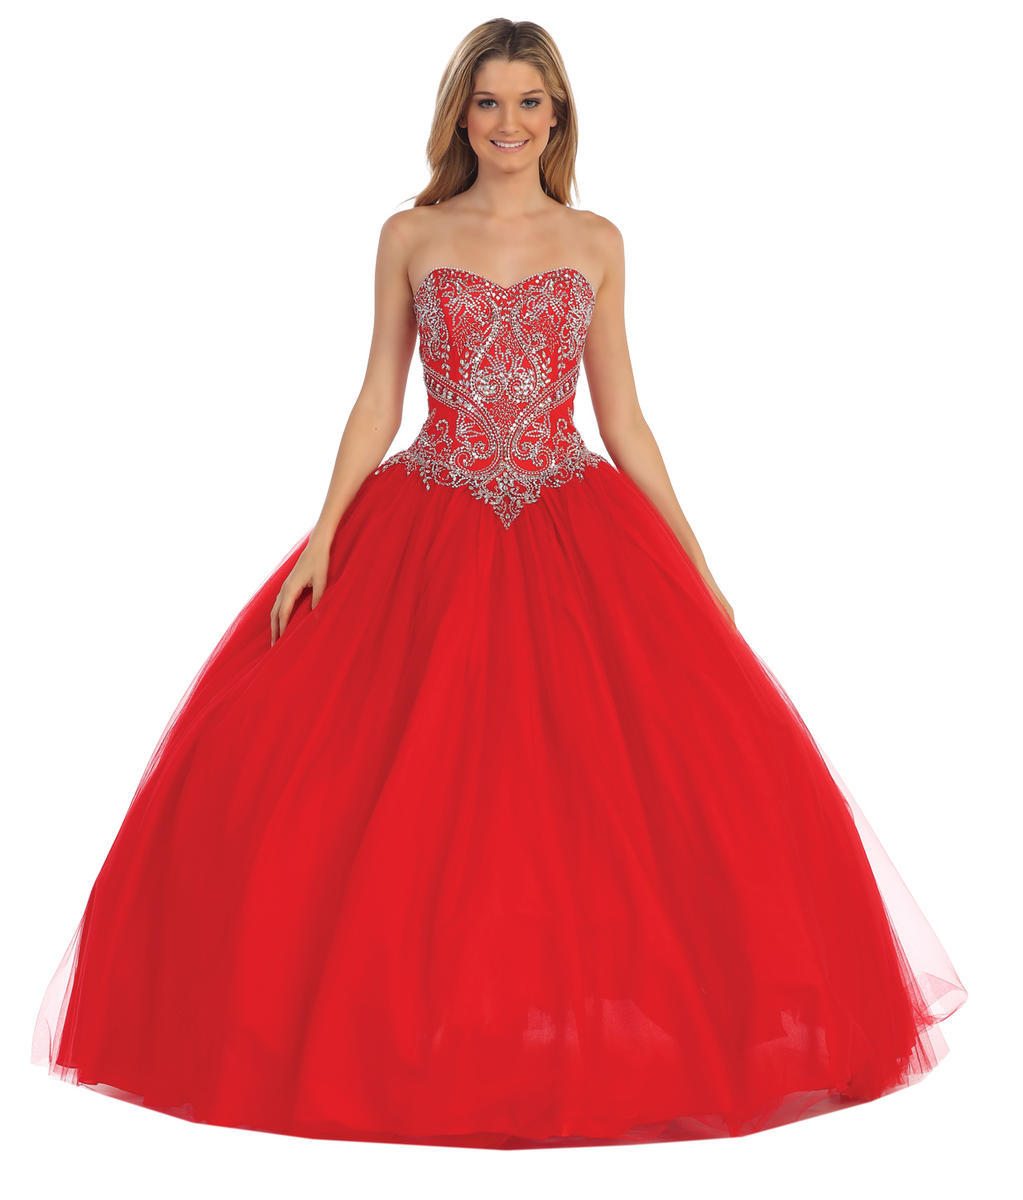 Queen Gown Dress